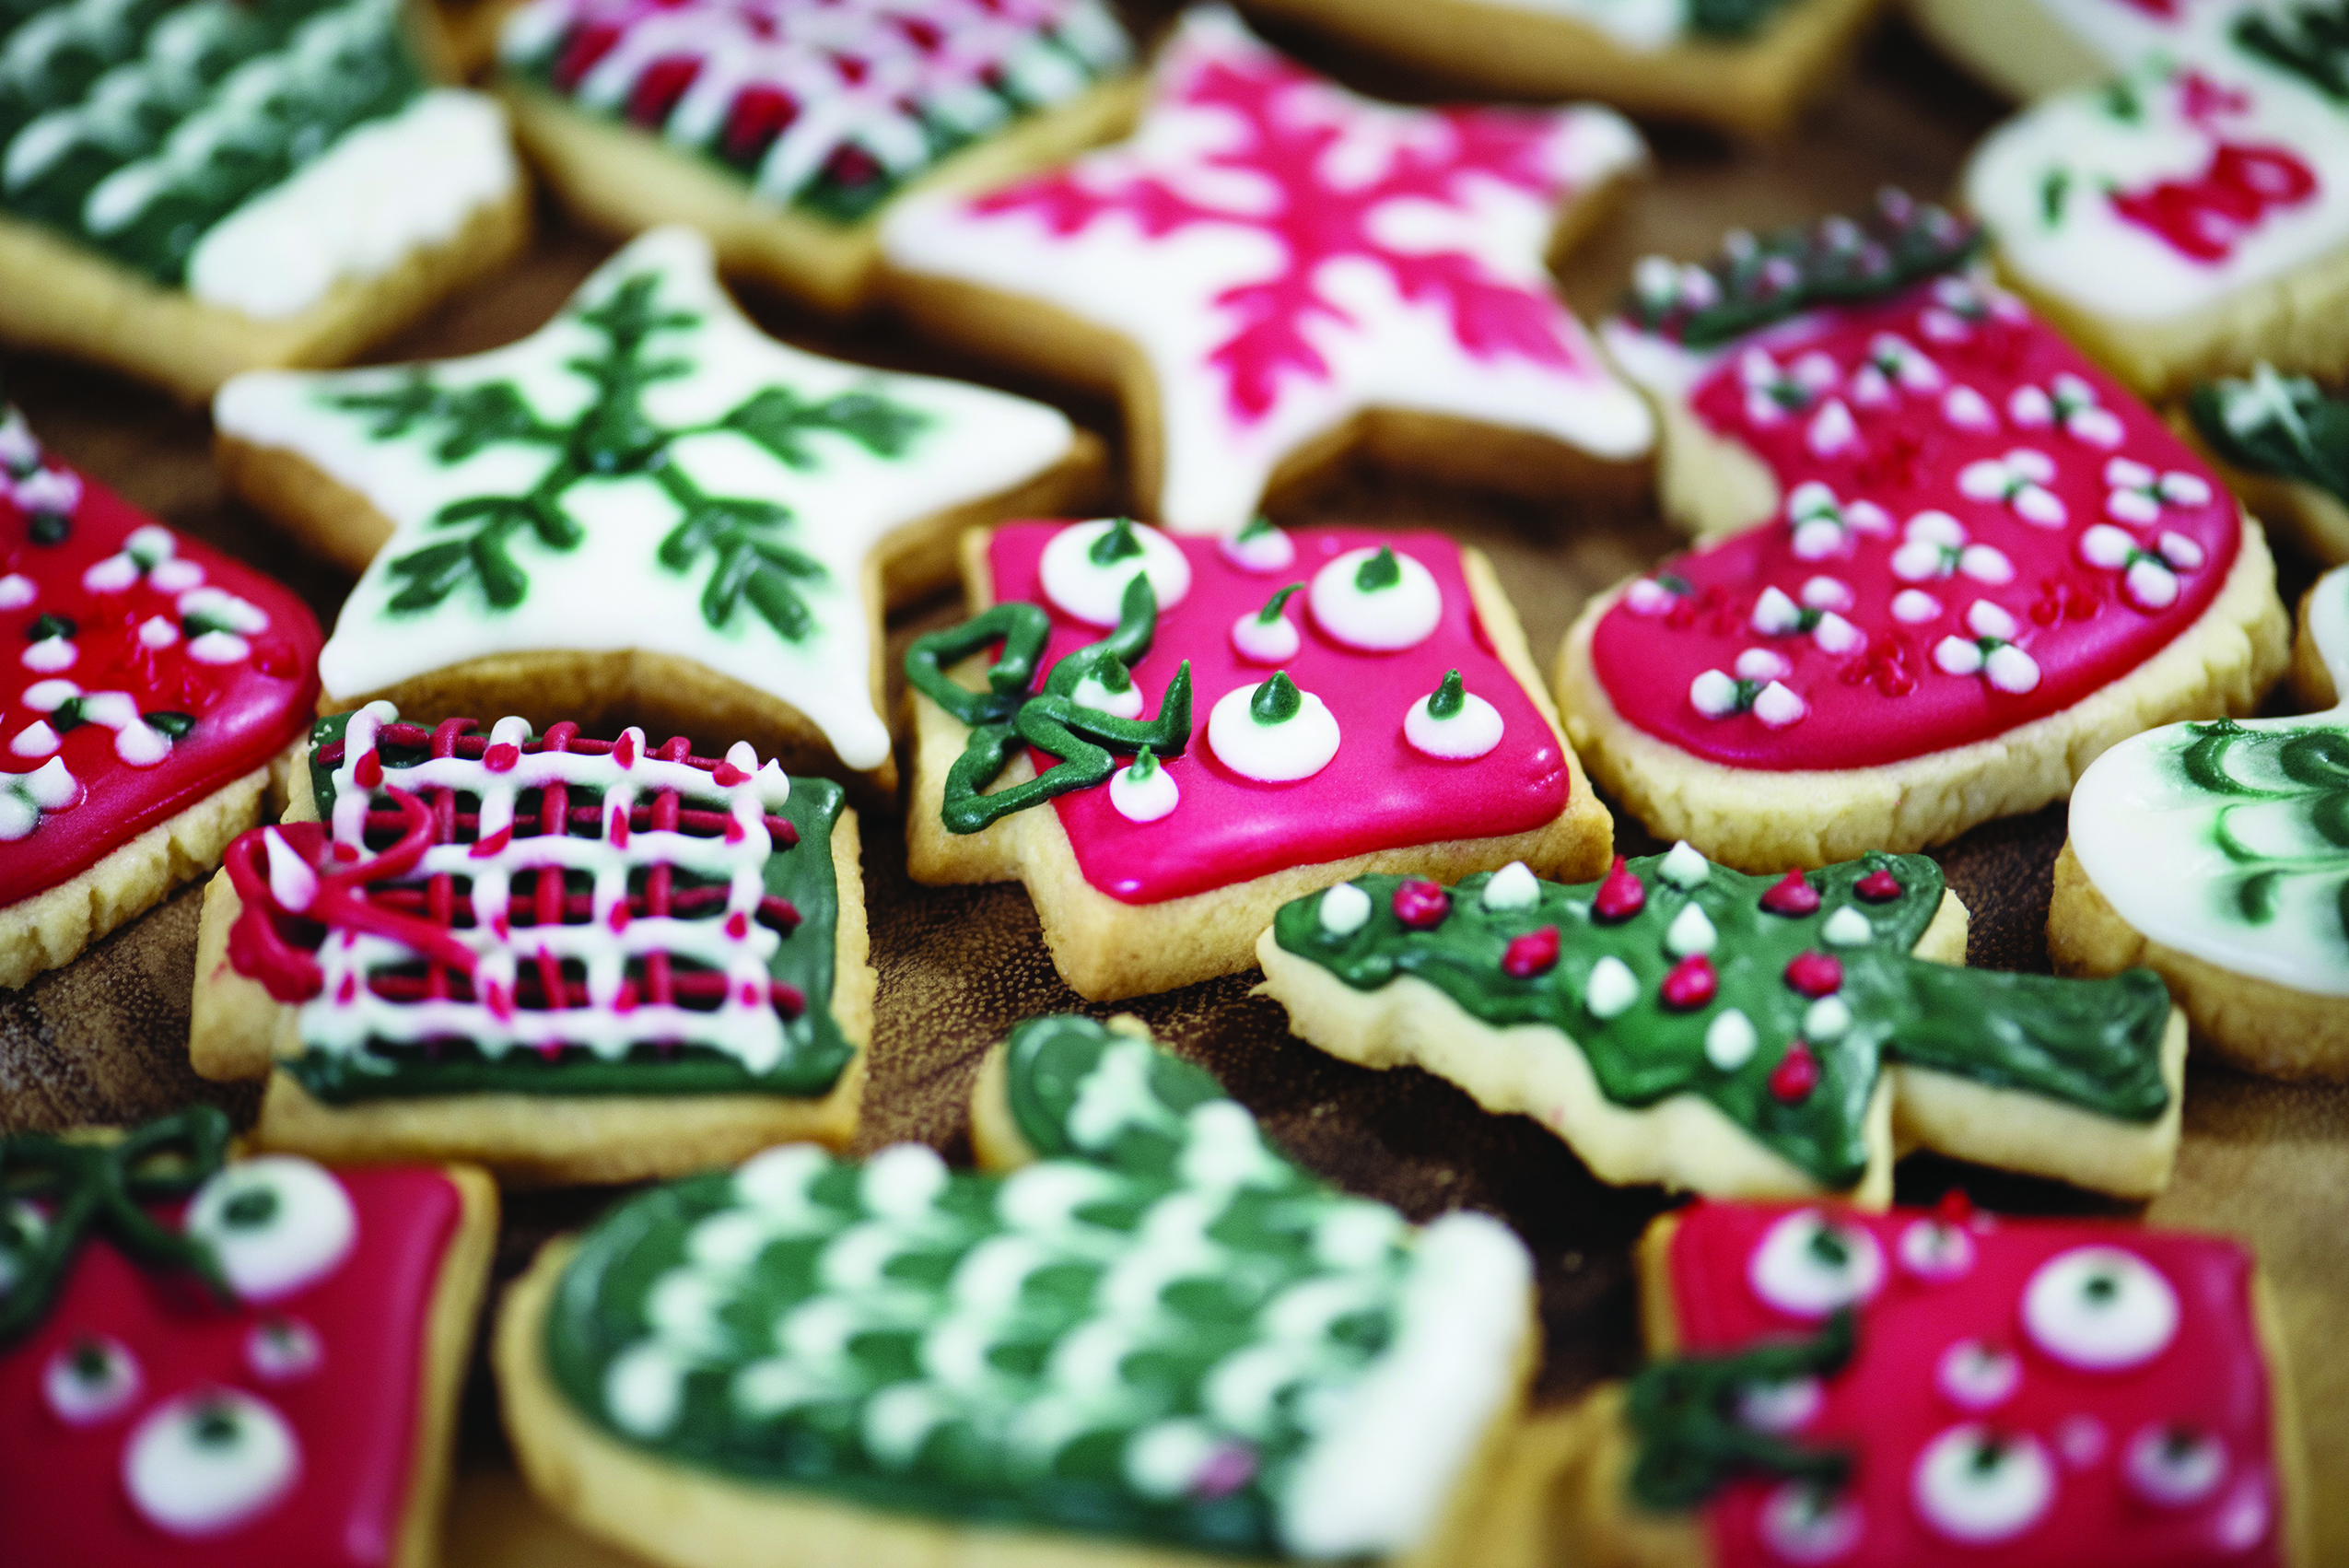 Christmas Cookie Exchange.How To Host A Christmas Cookie Exchange Party By Amy Iori